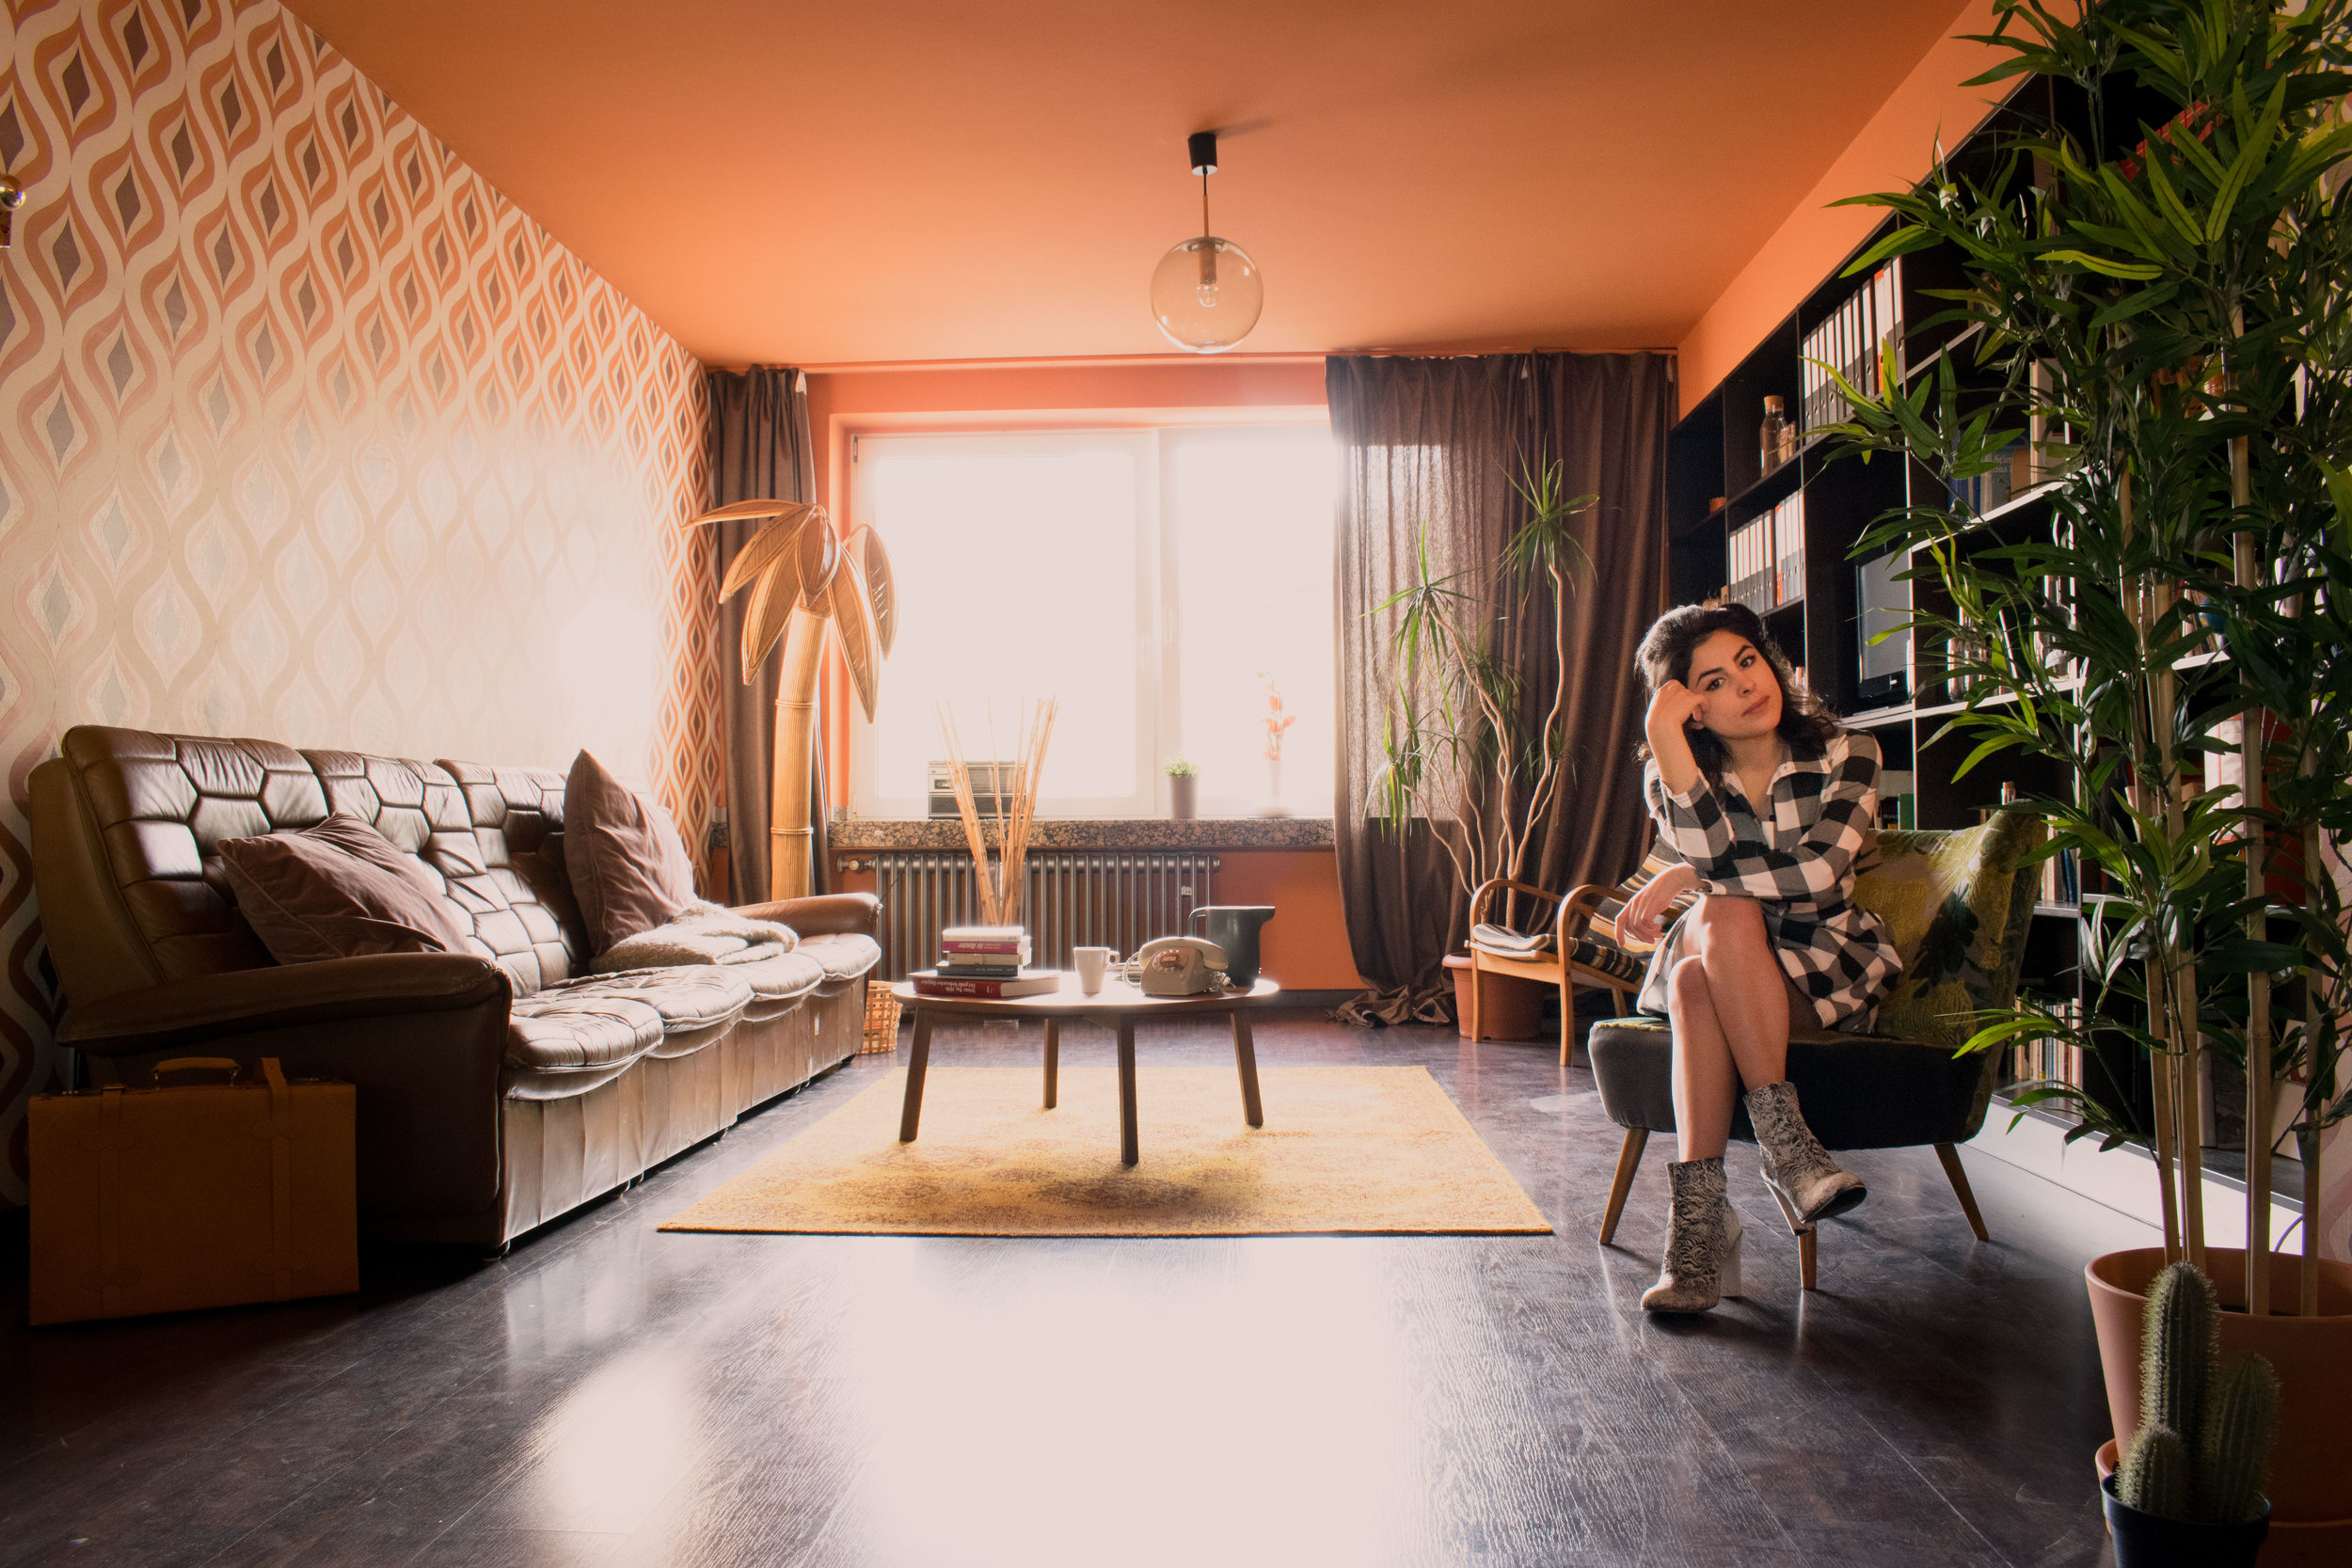 A dreamy 1970's earth-toned living room